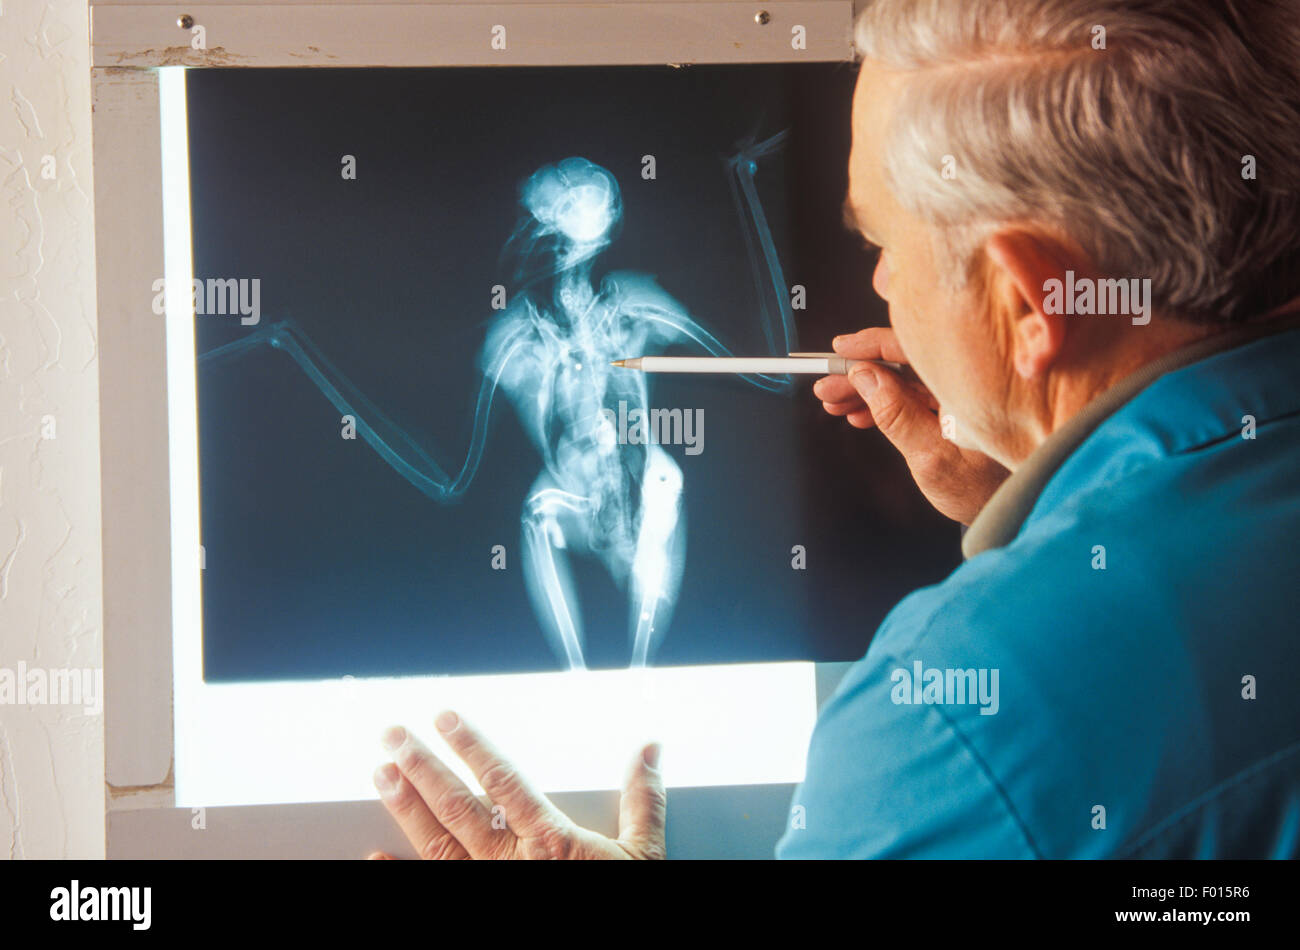 veterinarian examines x-ray of bird shot by hunter, Santa Barbara Wildlife Care Network, Santa Barbara, California - Stock Image